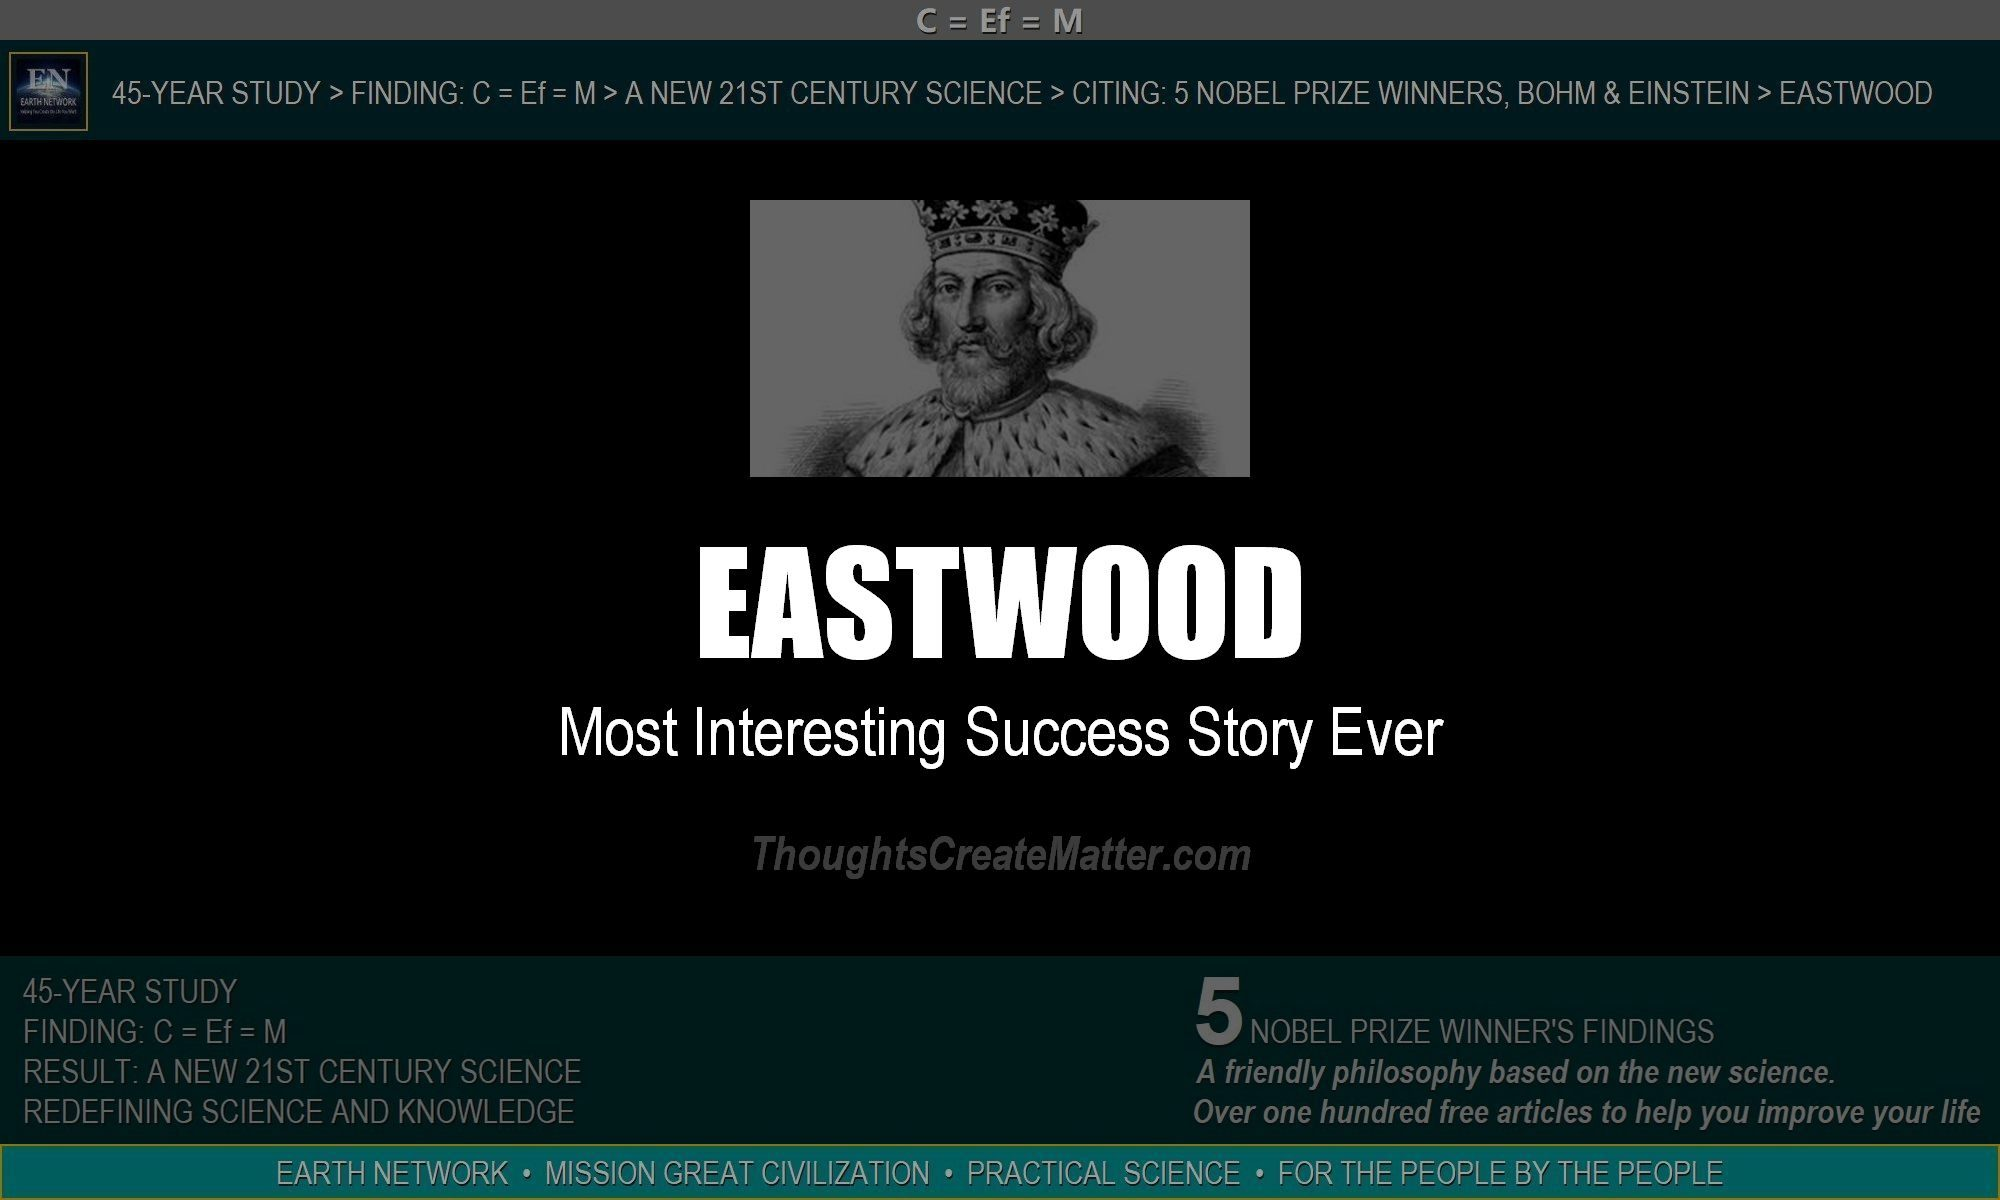 William Eastwood success story is highly unique.